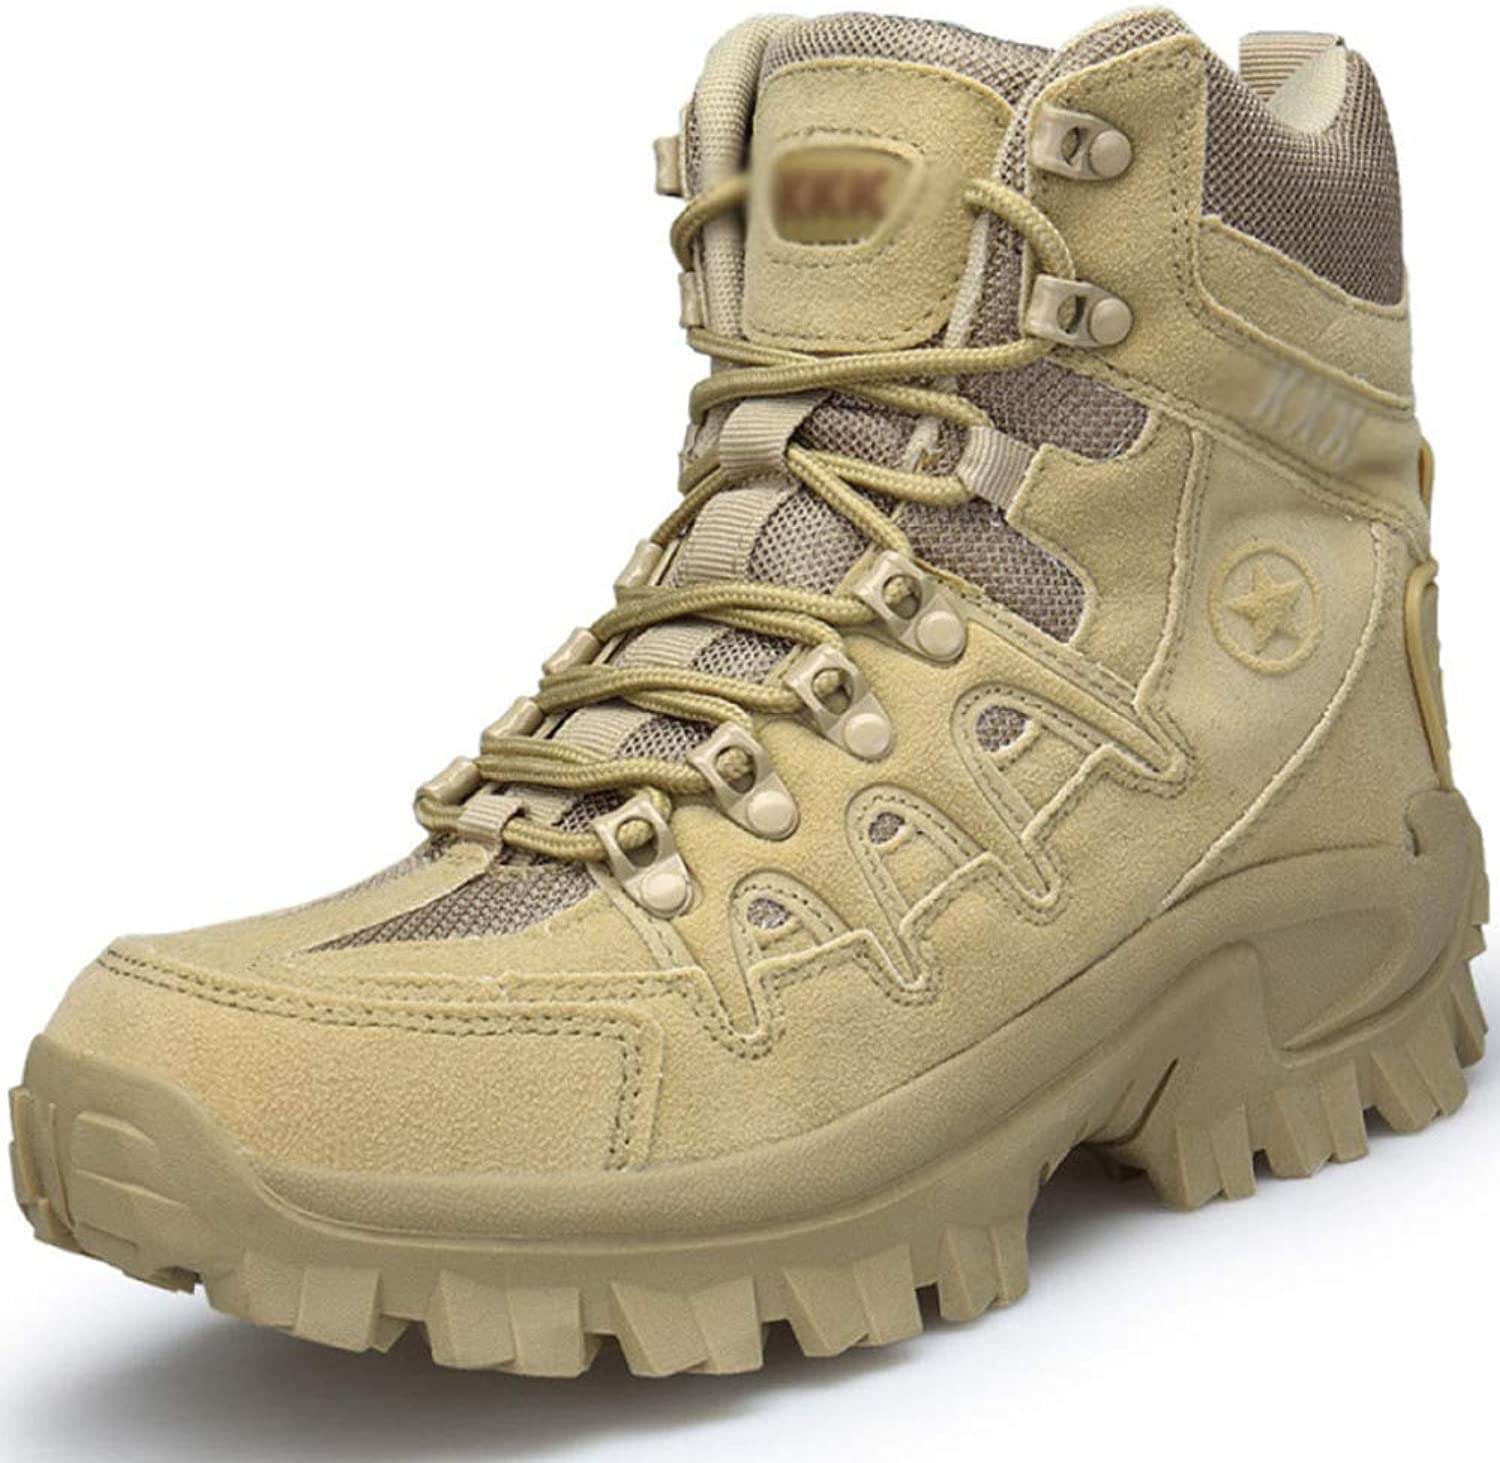 Hiking Boots Autumn Outdoor Men's Special Forces Tactical shoes High To Help Combat Boots Waterproof Desert Marine Boots